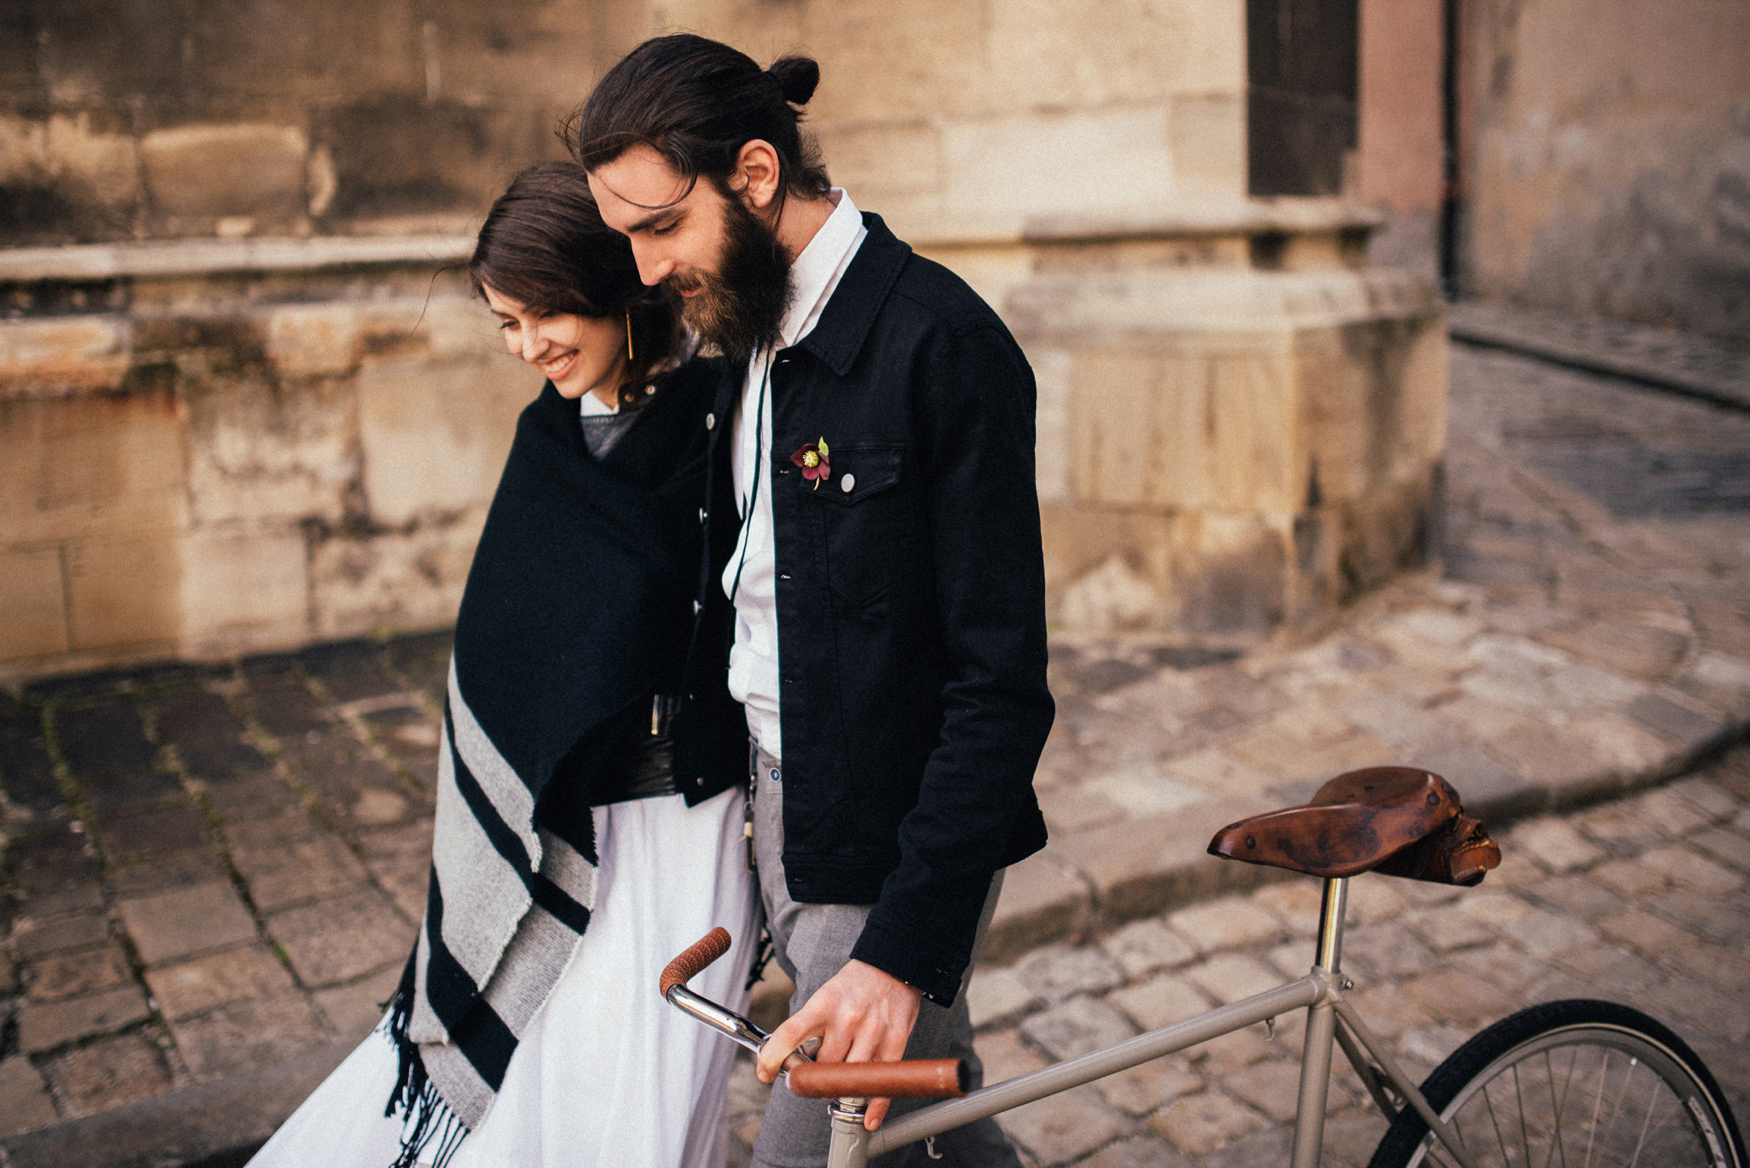 3 art deco inspired hipster wedding editorial bratislava 018.jpg